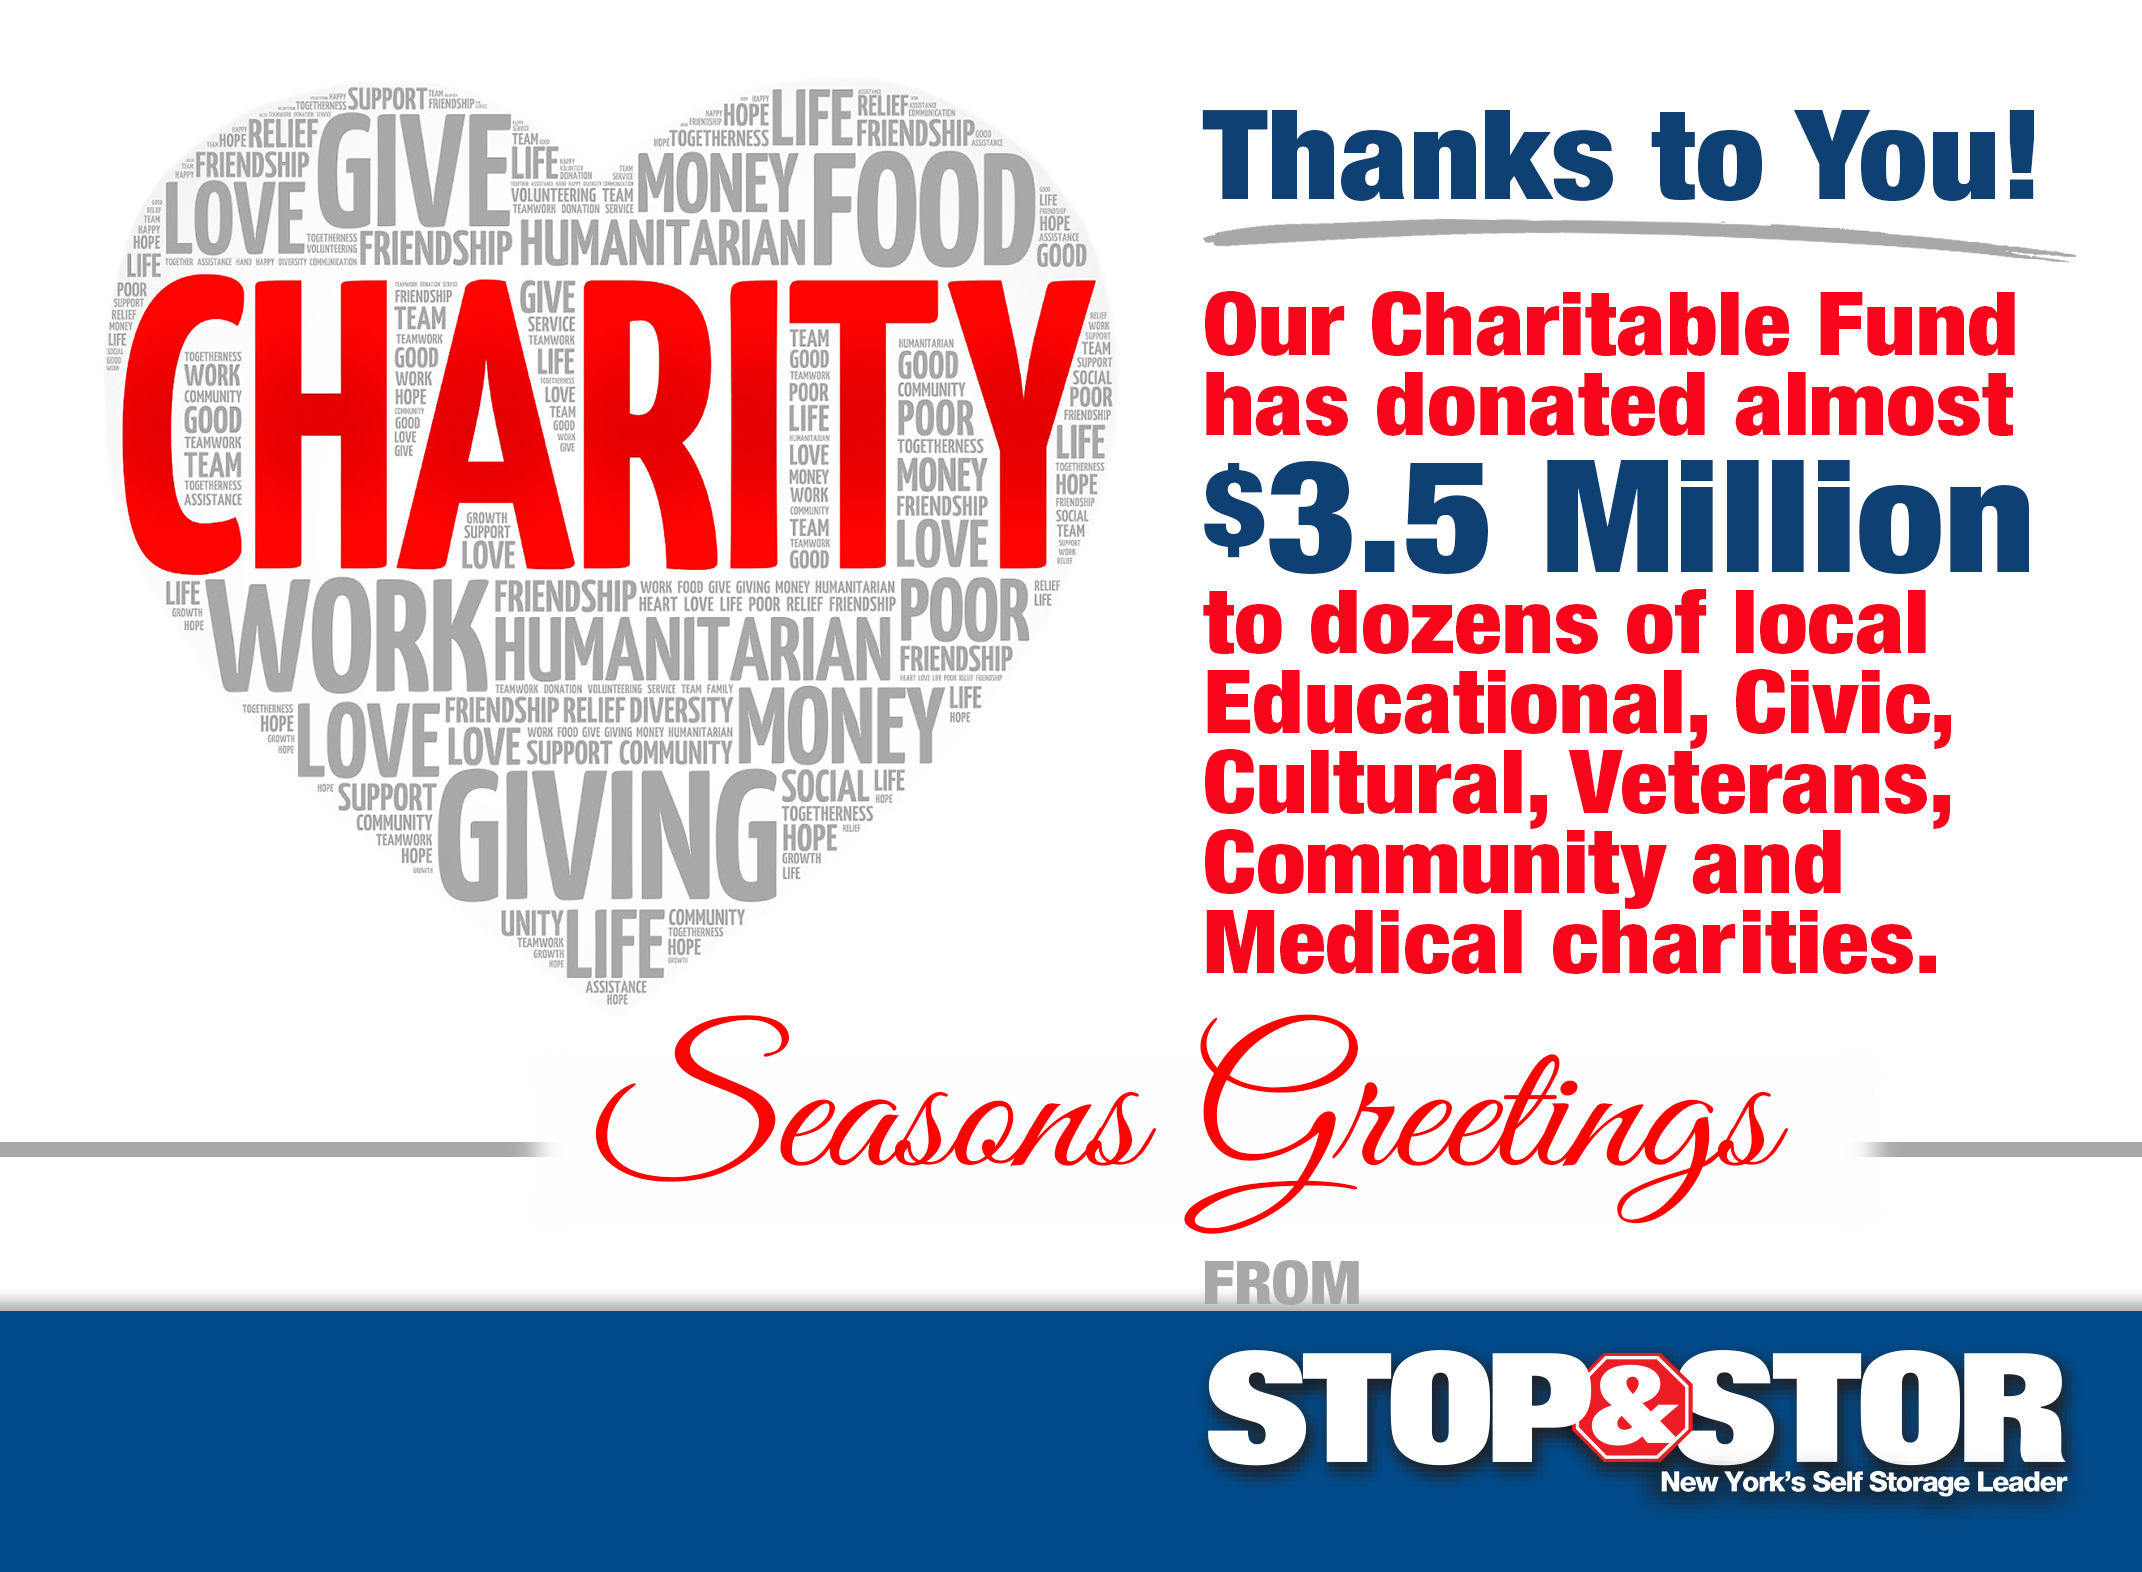 Stop & Stor Charitable Fund